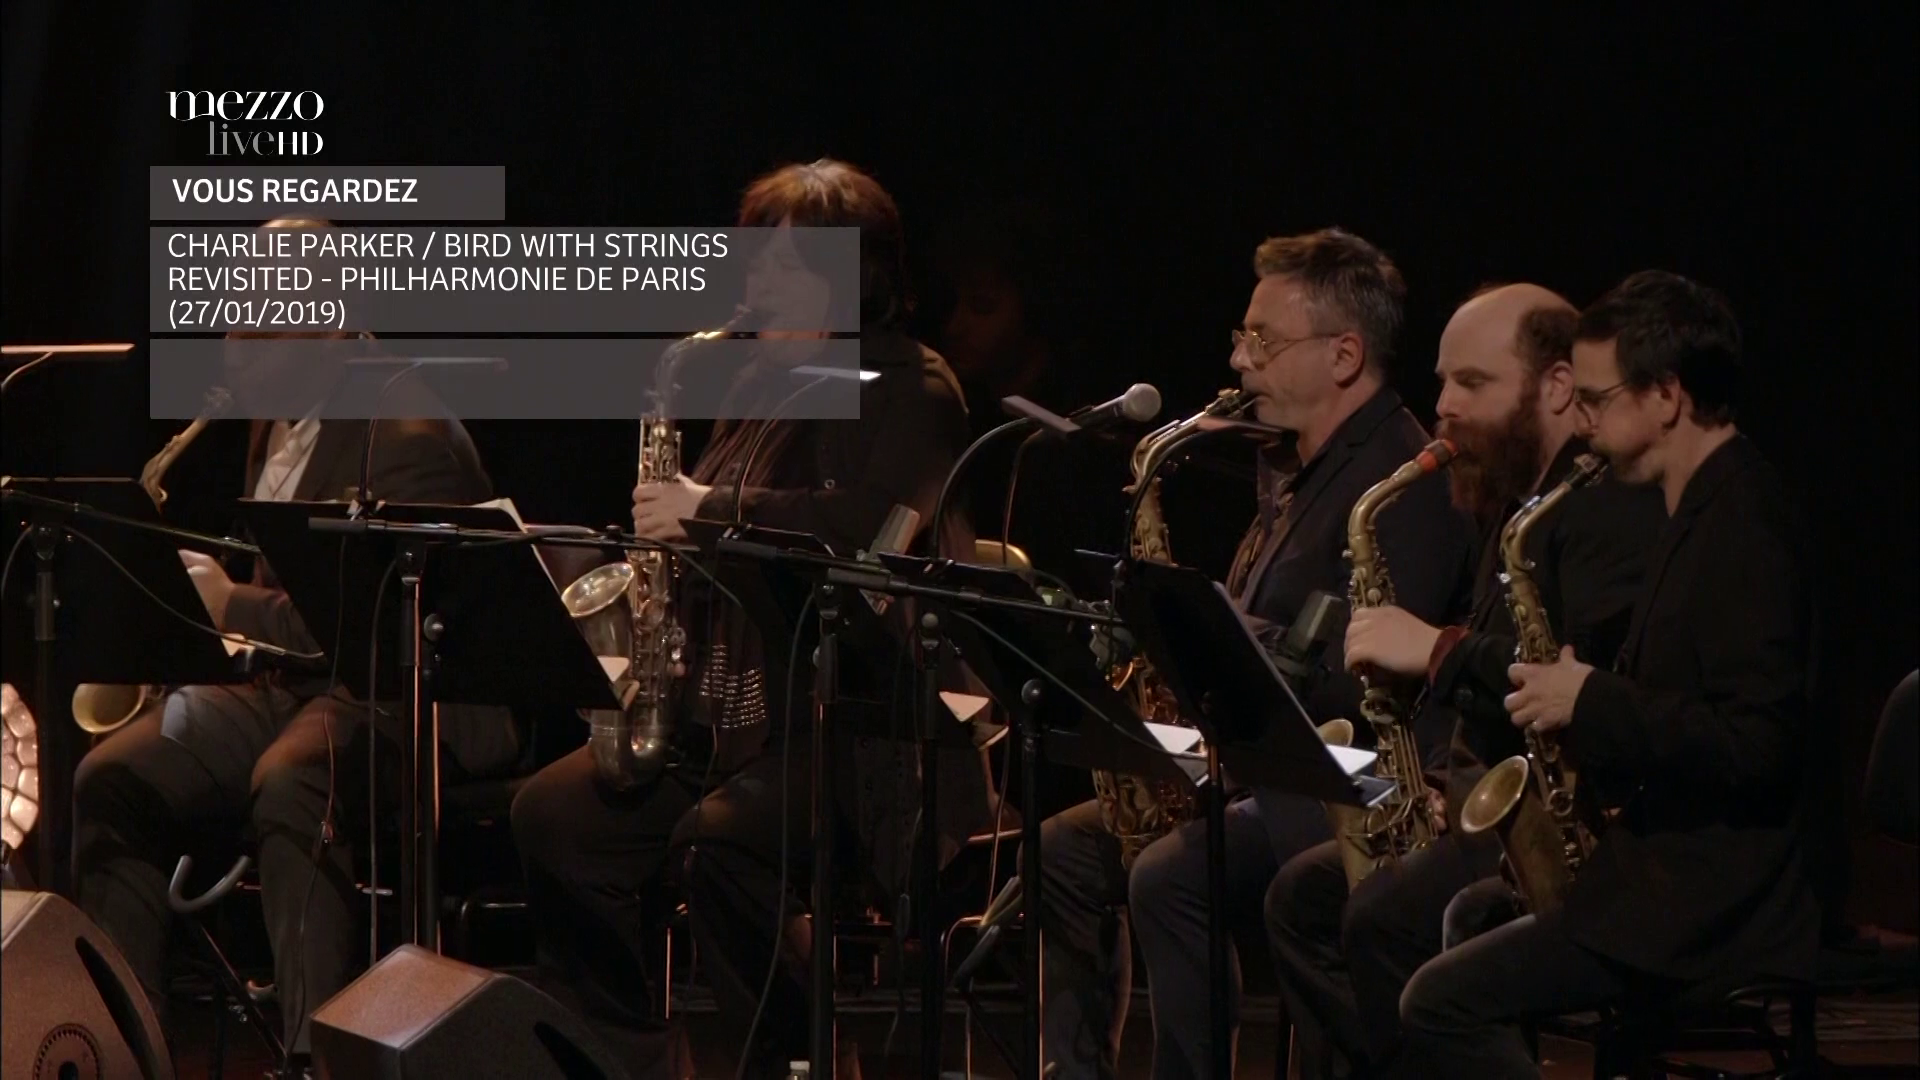 2019 Jazz At The Philharmonie - Charlie Parker - Bird With Strings Revisited [HDTV 1080p] 2